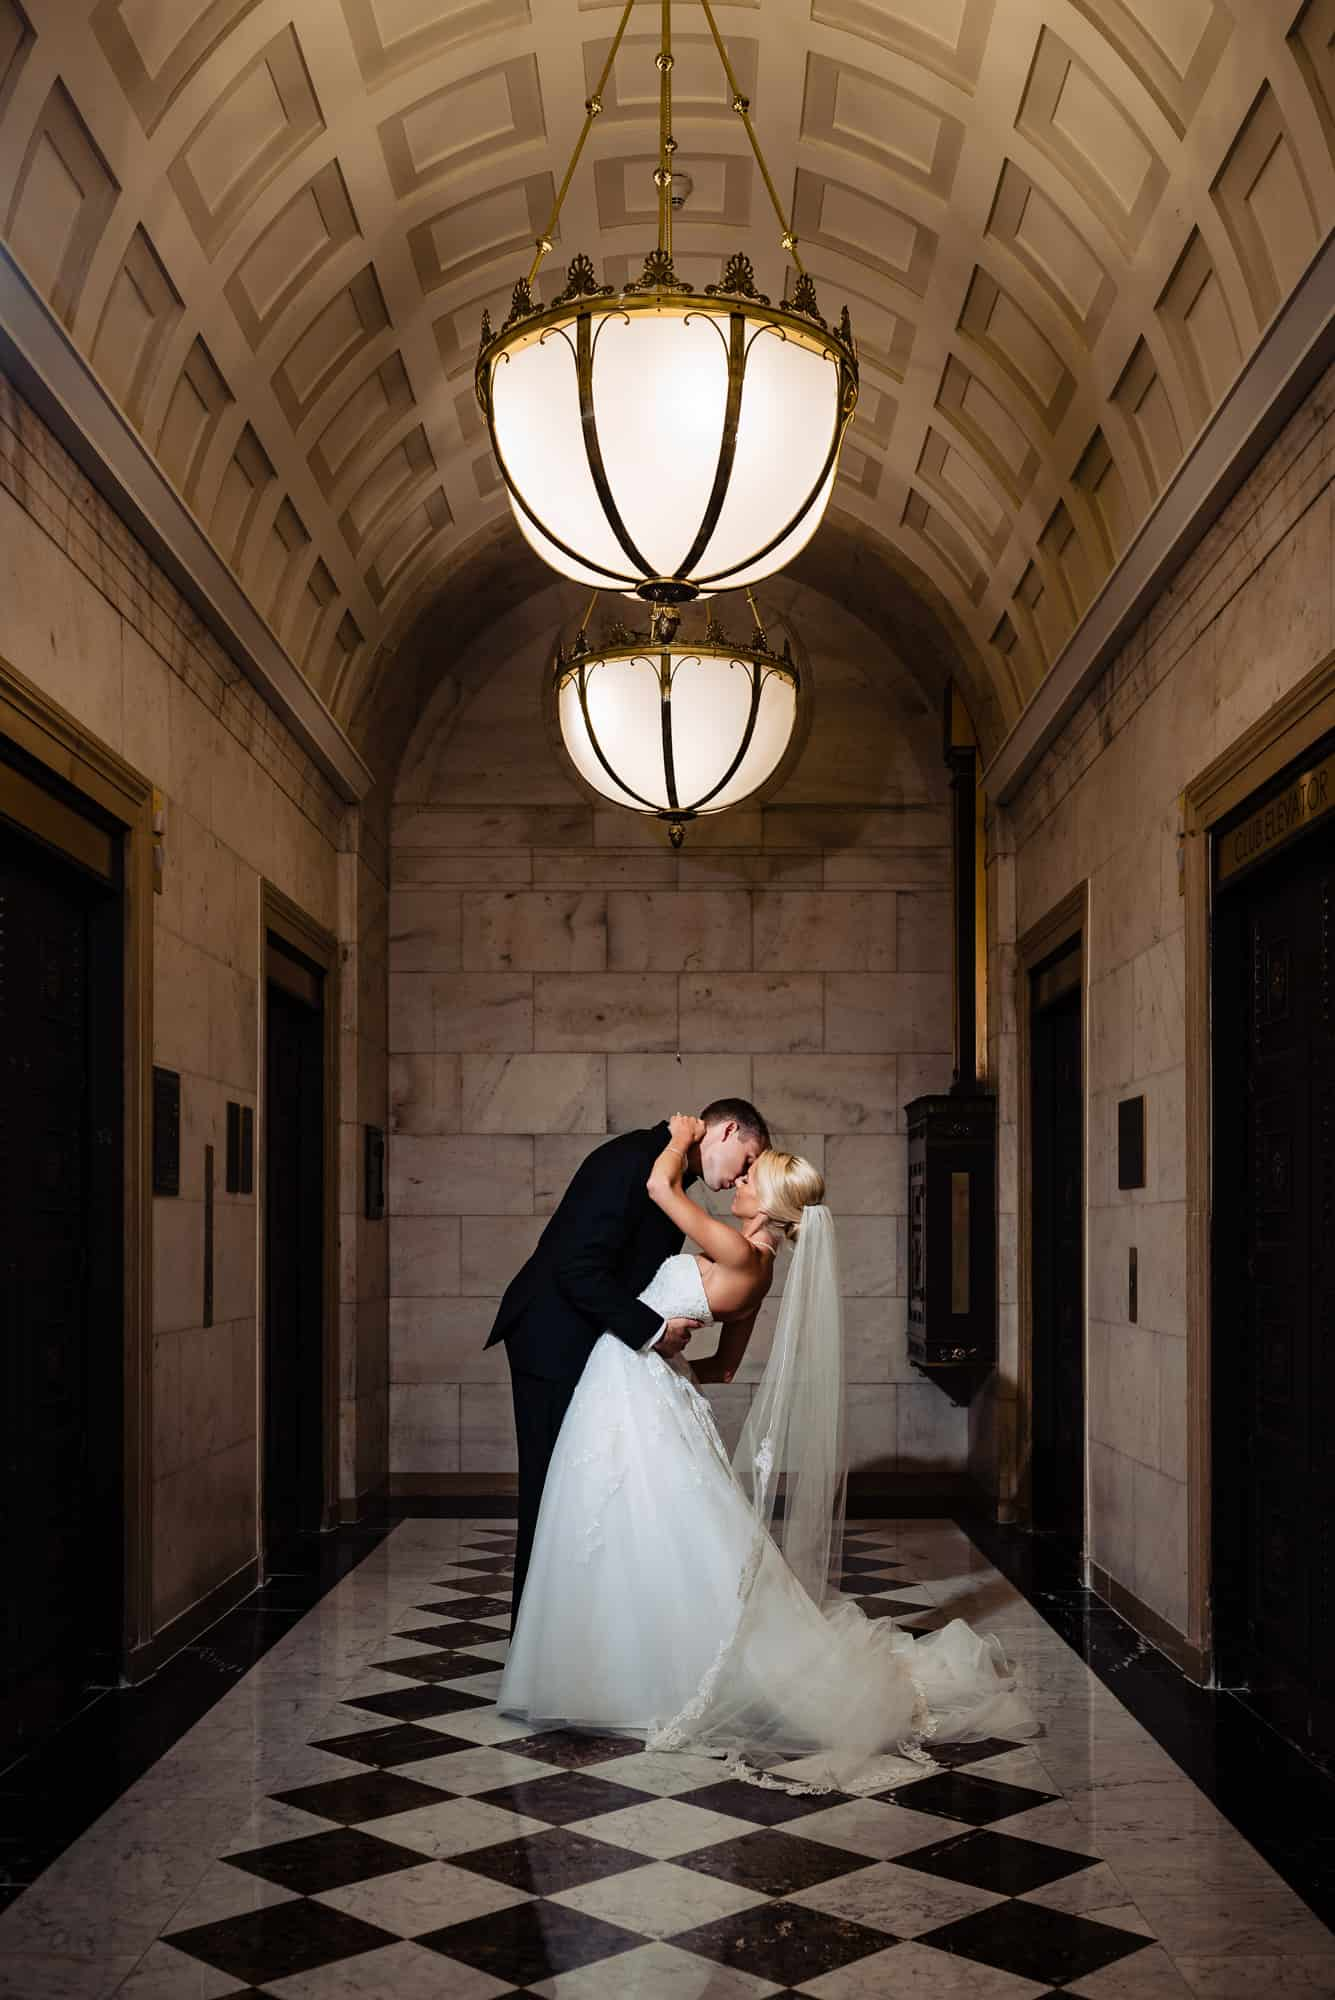 Bride and groom in epic wedding photo embracing at the Ritz Carlton Philadelphia